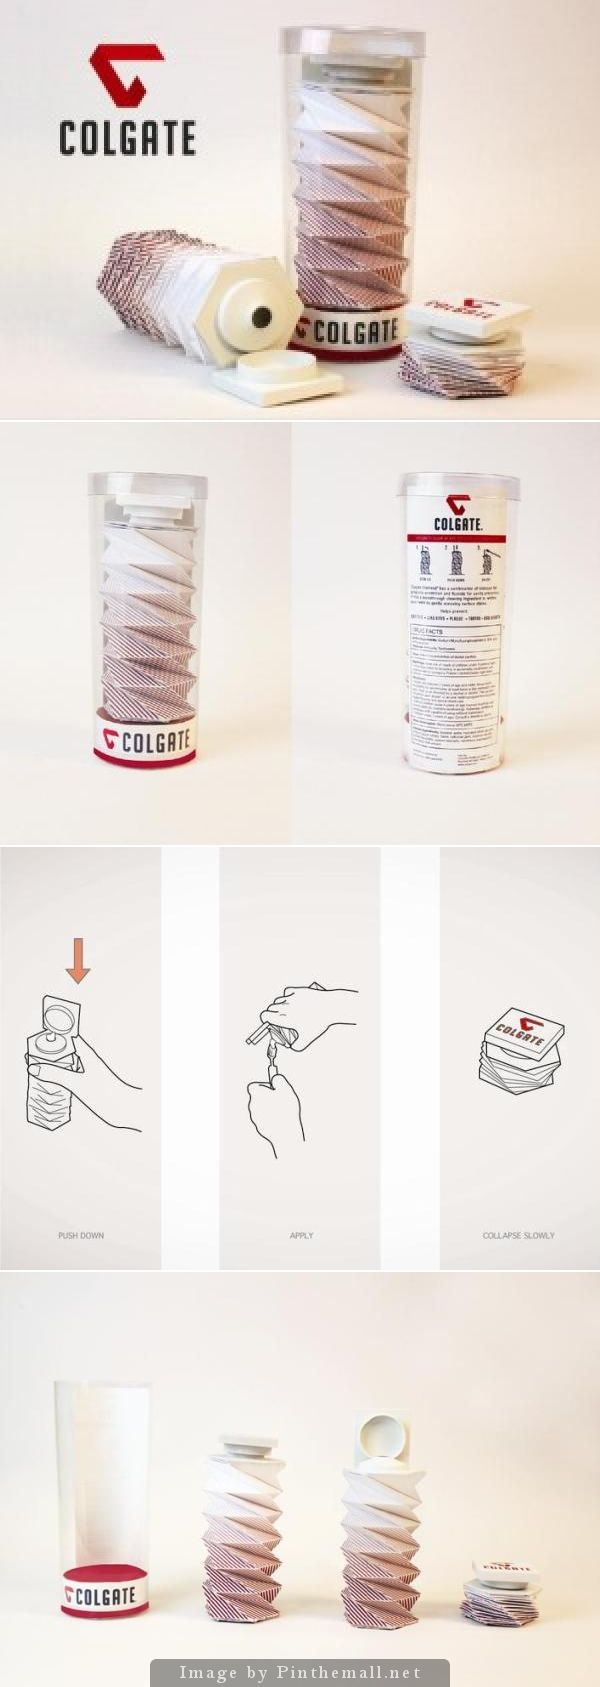 Good idea or excessive #packaging PD - created via http://creativegreed.com/toothpaste-dispenser-packaging-design-will-make-life-easier-see/